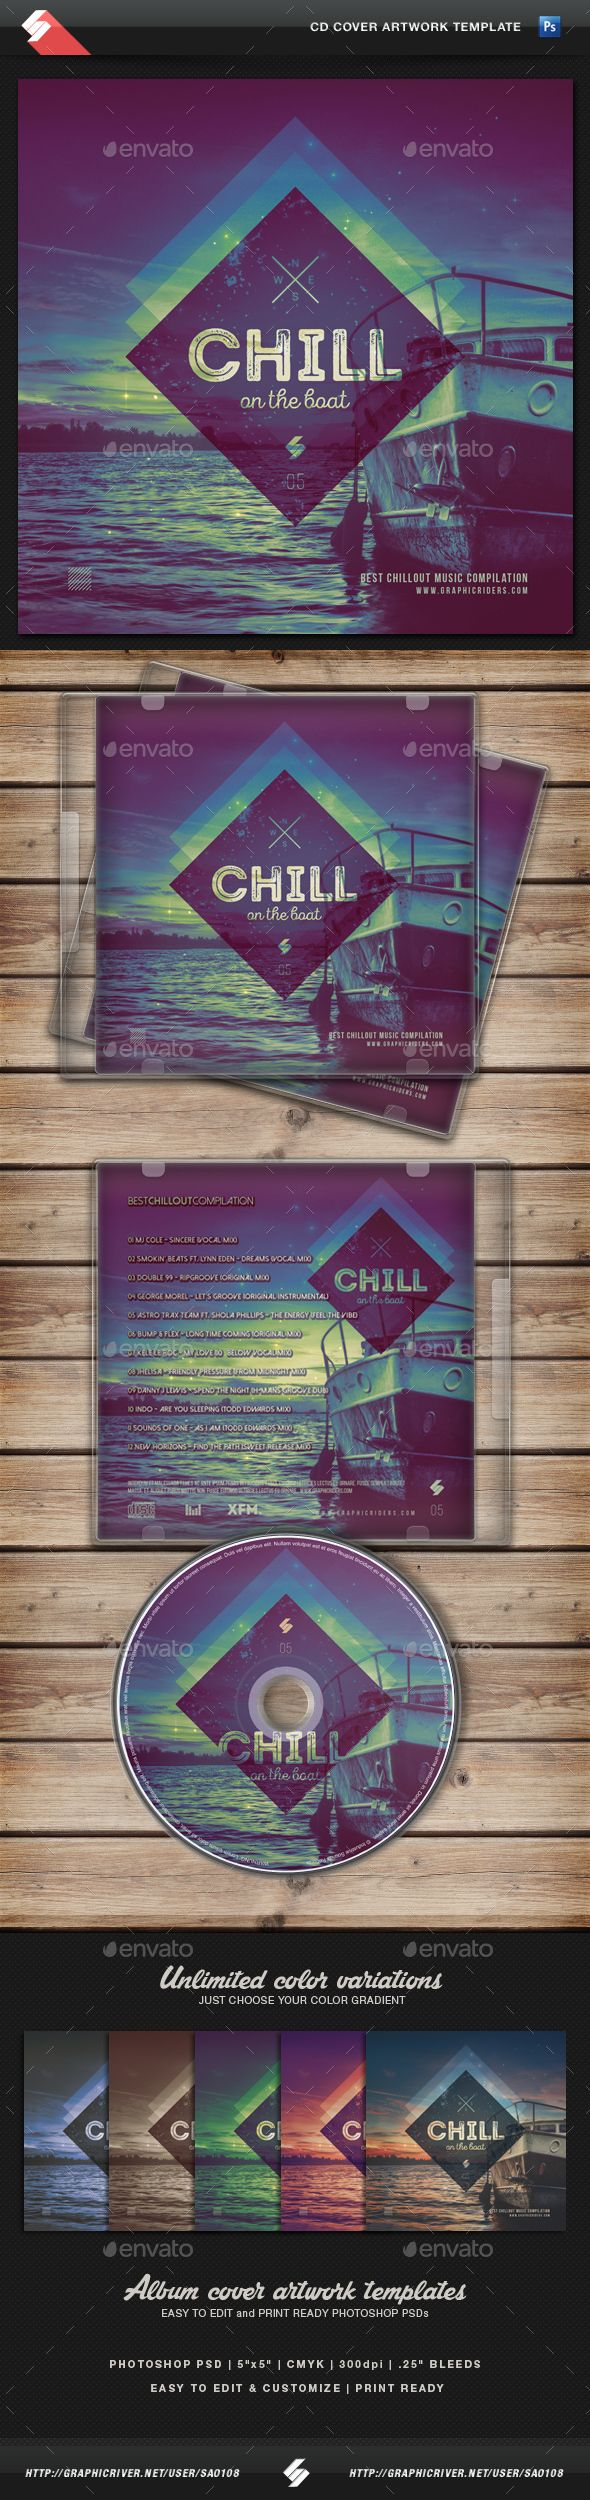 Chill On The Boat - Music CD Cover Template